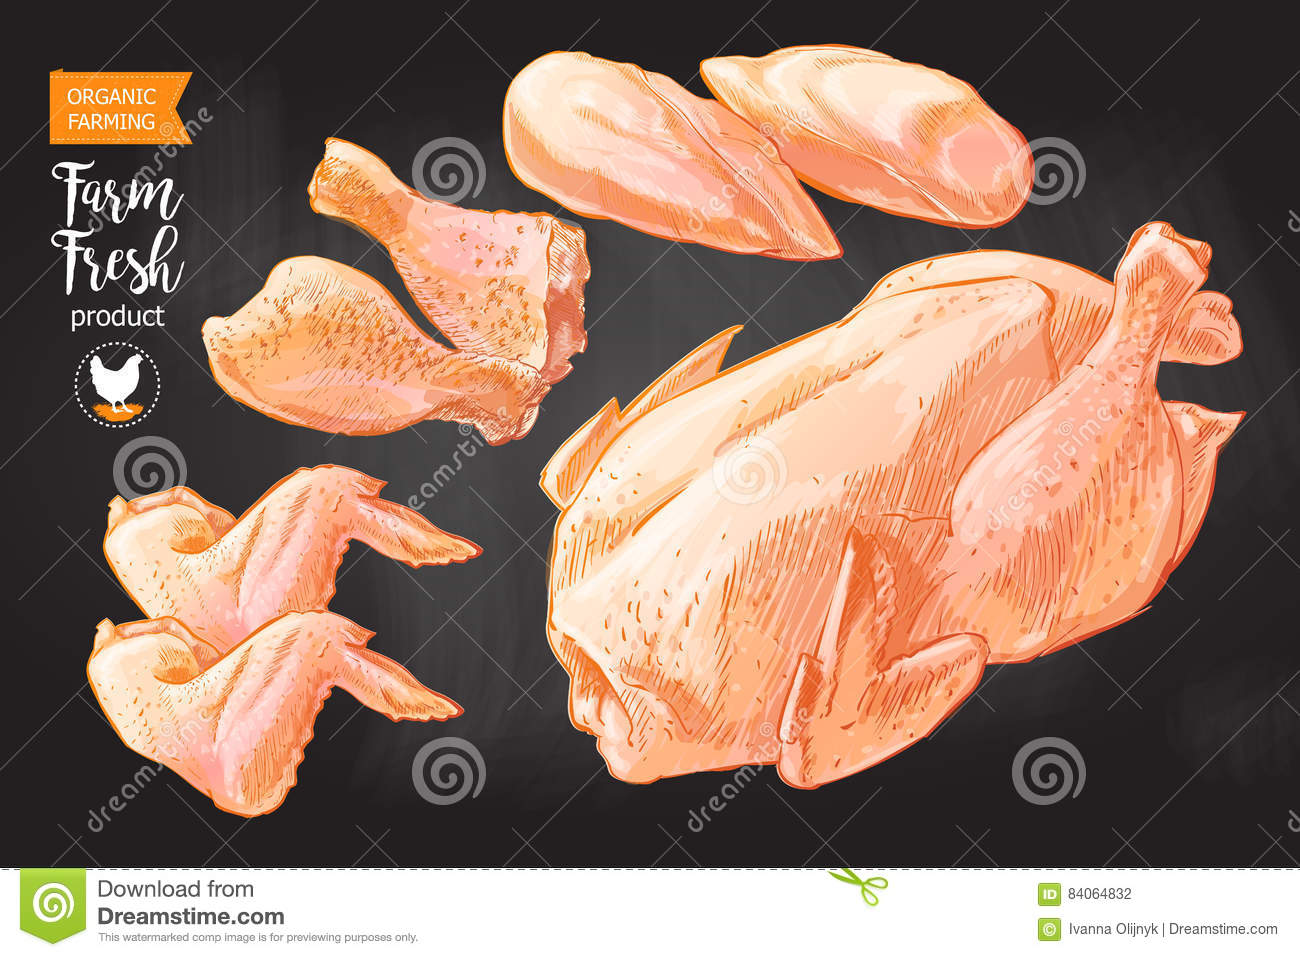 Chicken Meat Parts Fabulous Any Fleshy Are Covered With Of A Diagram Bone Free Stock For Xkb